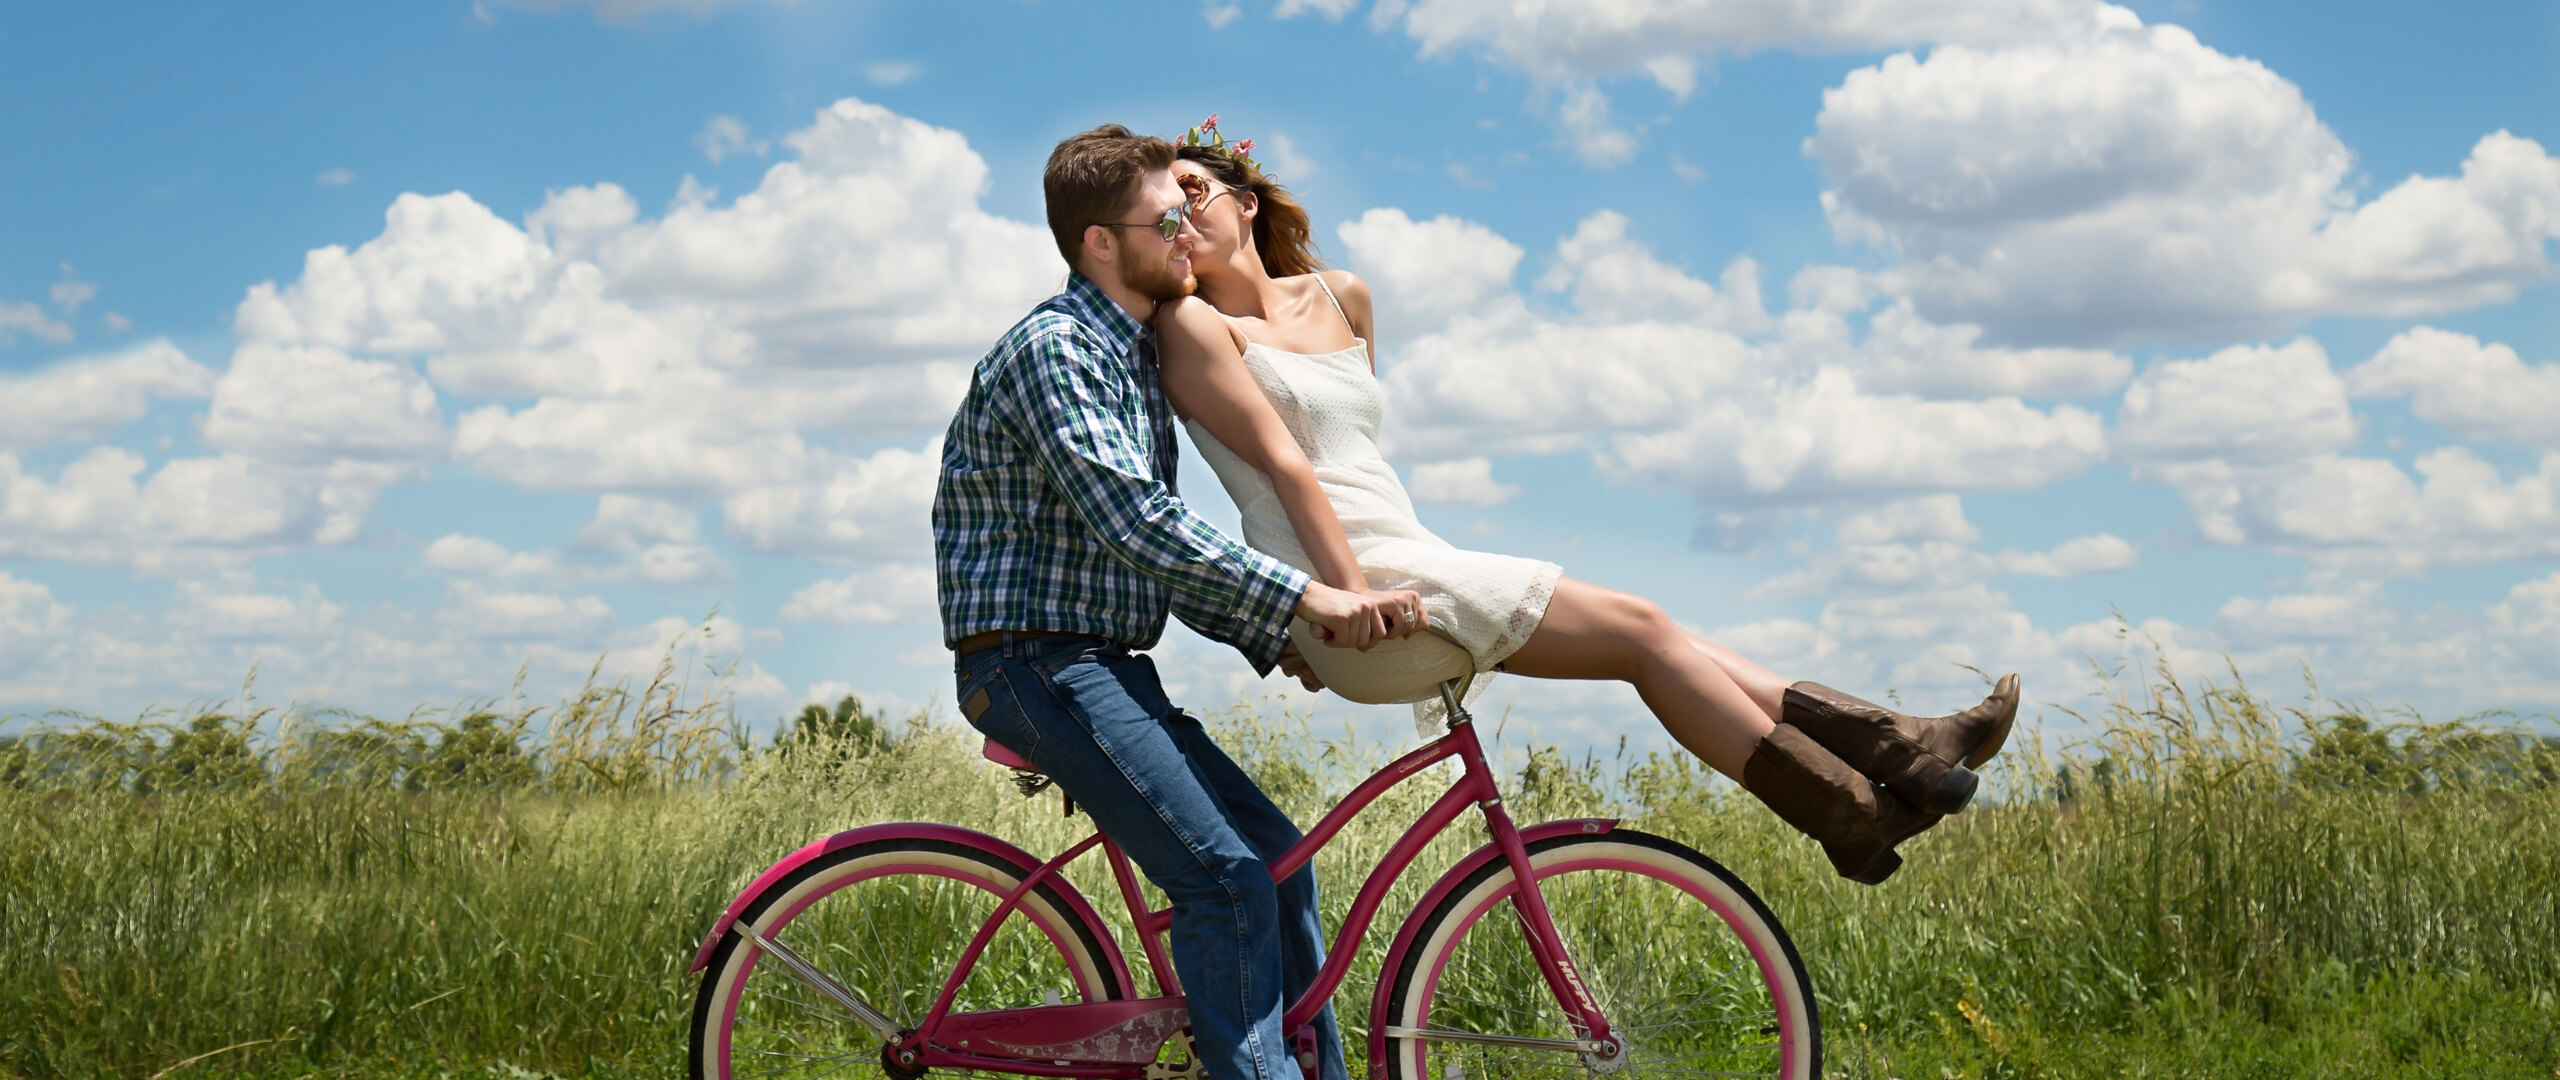 2560x1080 Couple Bike Romantic 2560x1080 Resolution Hd 4k Wallpapers Images Backgrounds Photos And Pictures